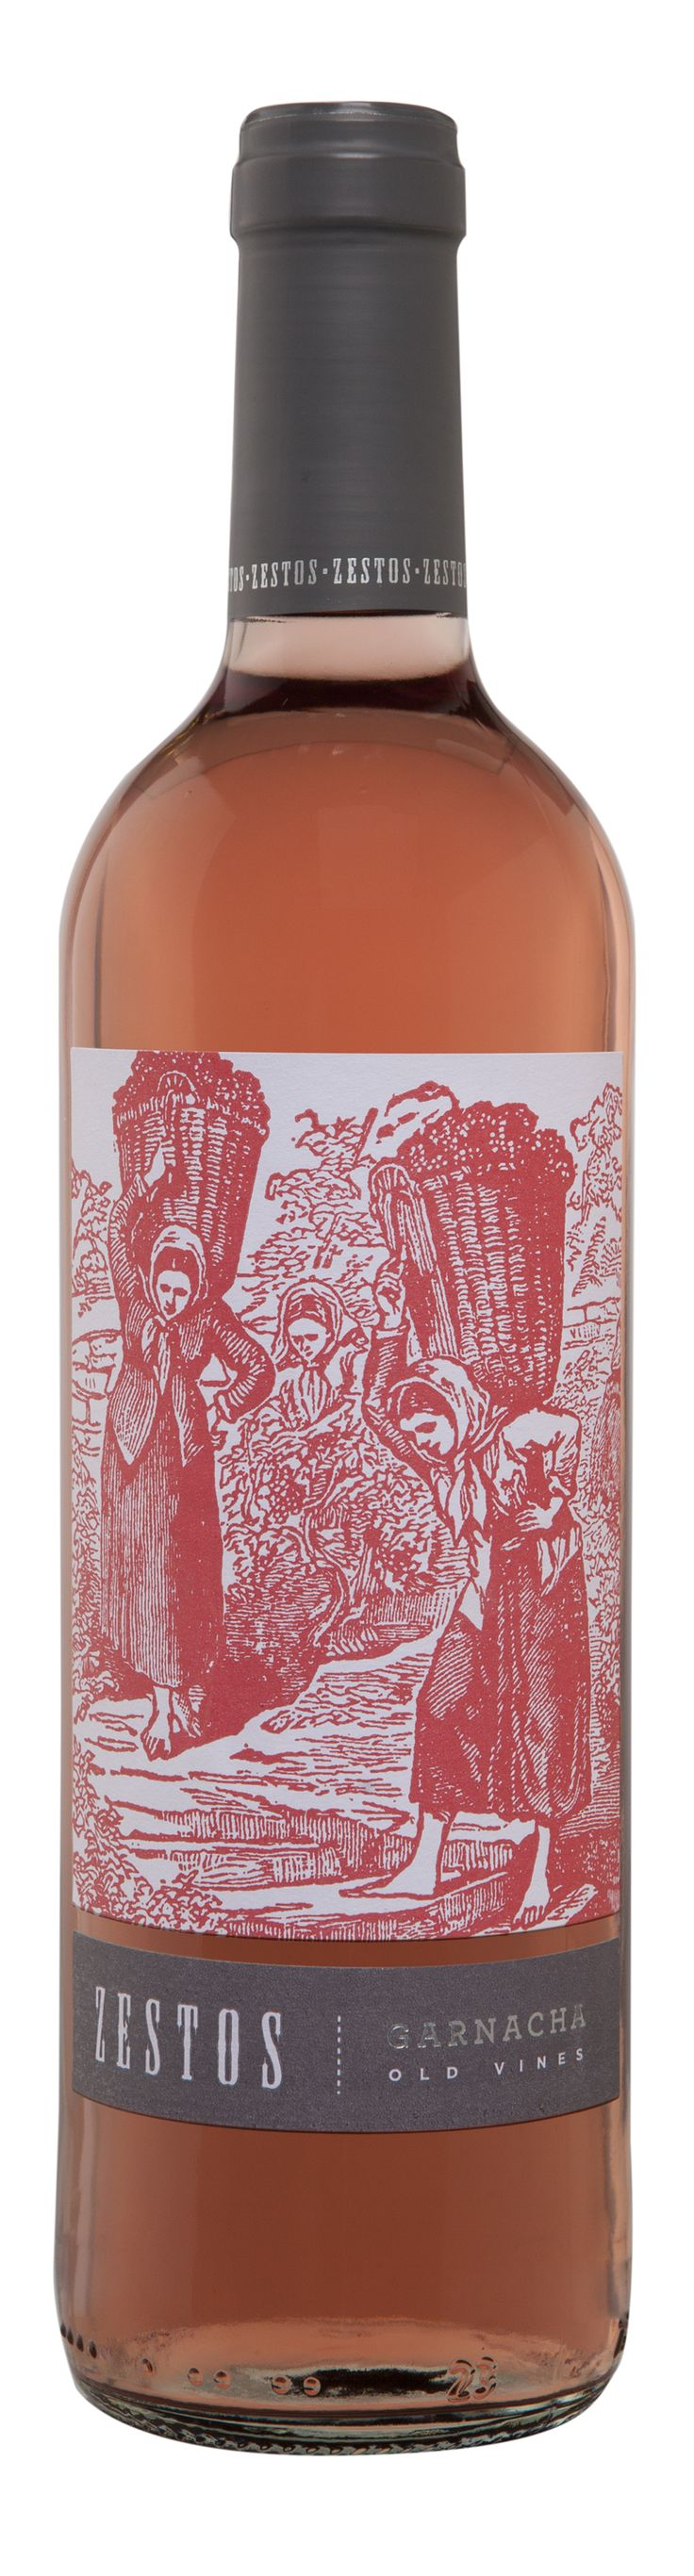 Zestos Rosado Spain Winecurmdgeon 2016 Hall Of Fame Wine Bottle Wine Wines